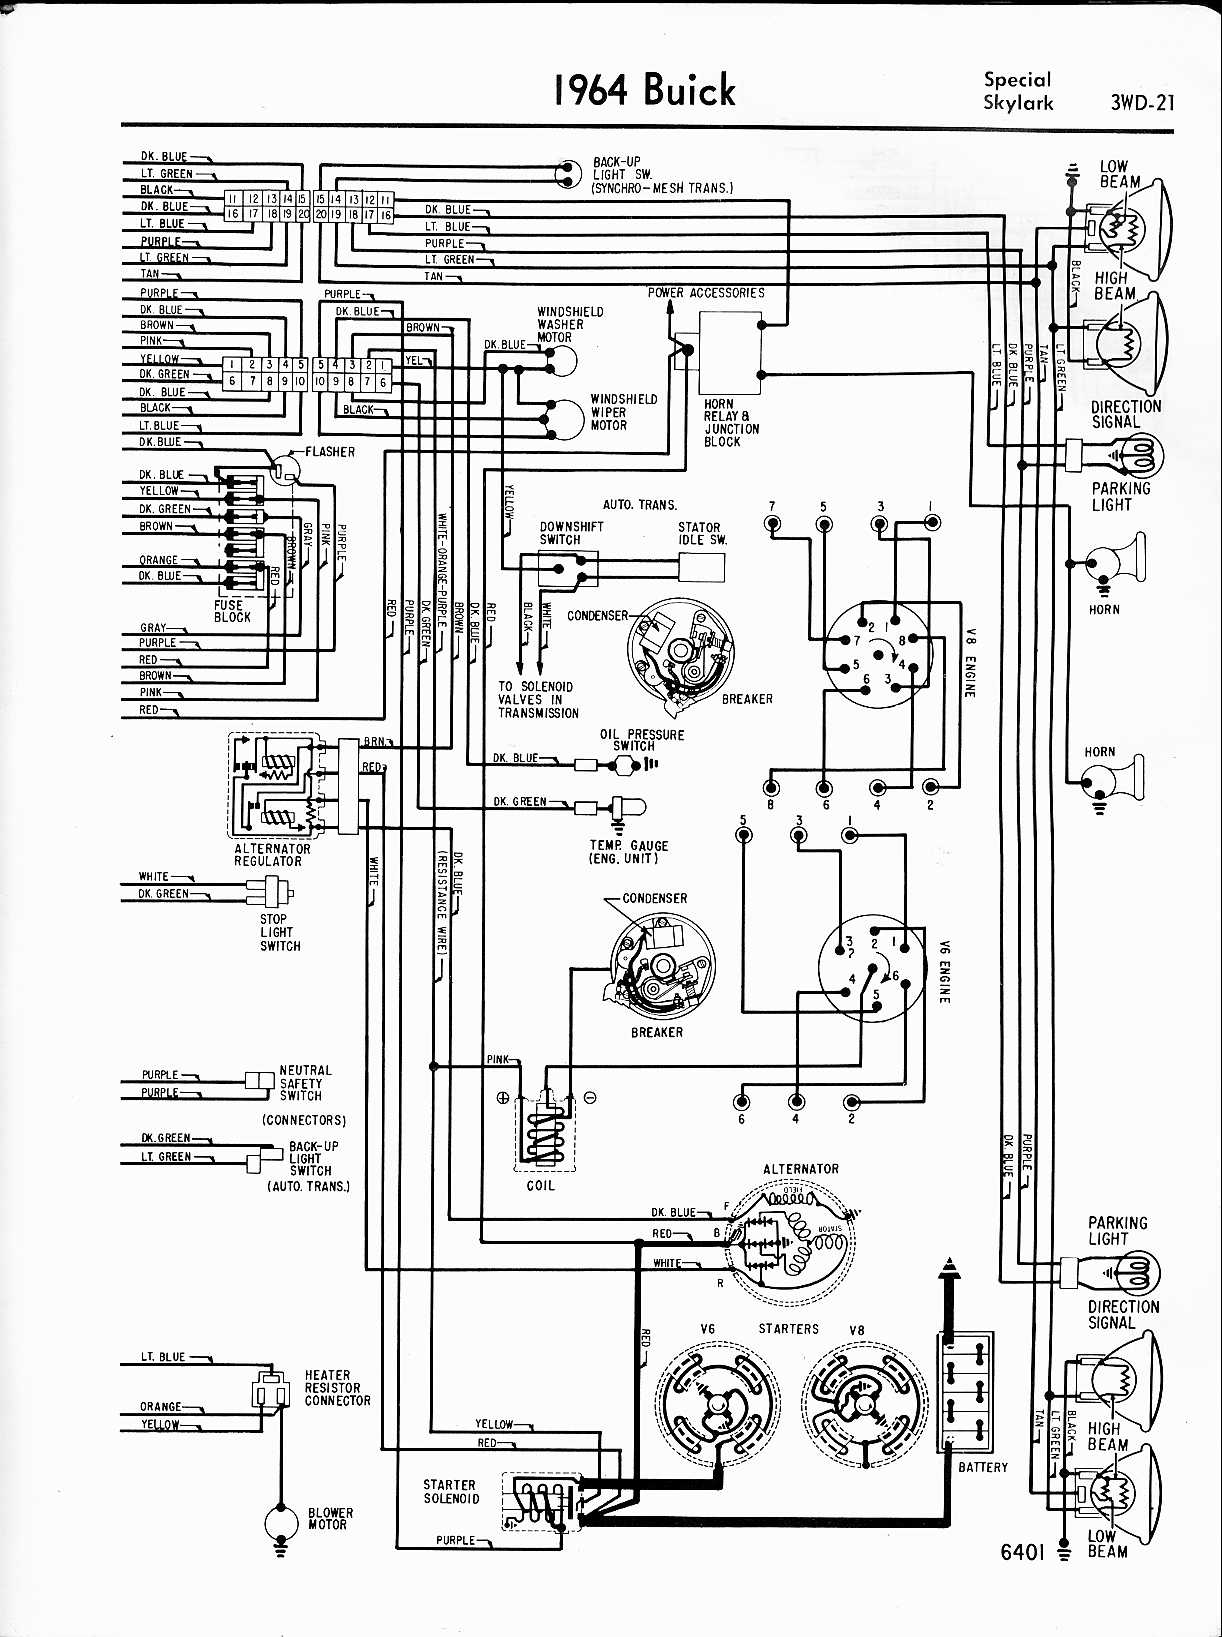 [DIAGRAM] 67 Chevelle Fuse Box Diagram FULL Version HD